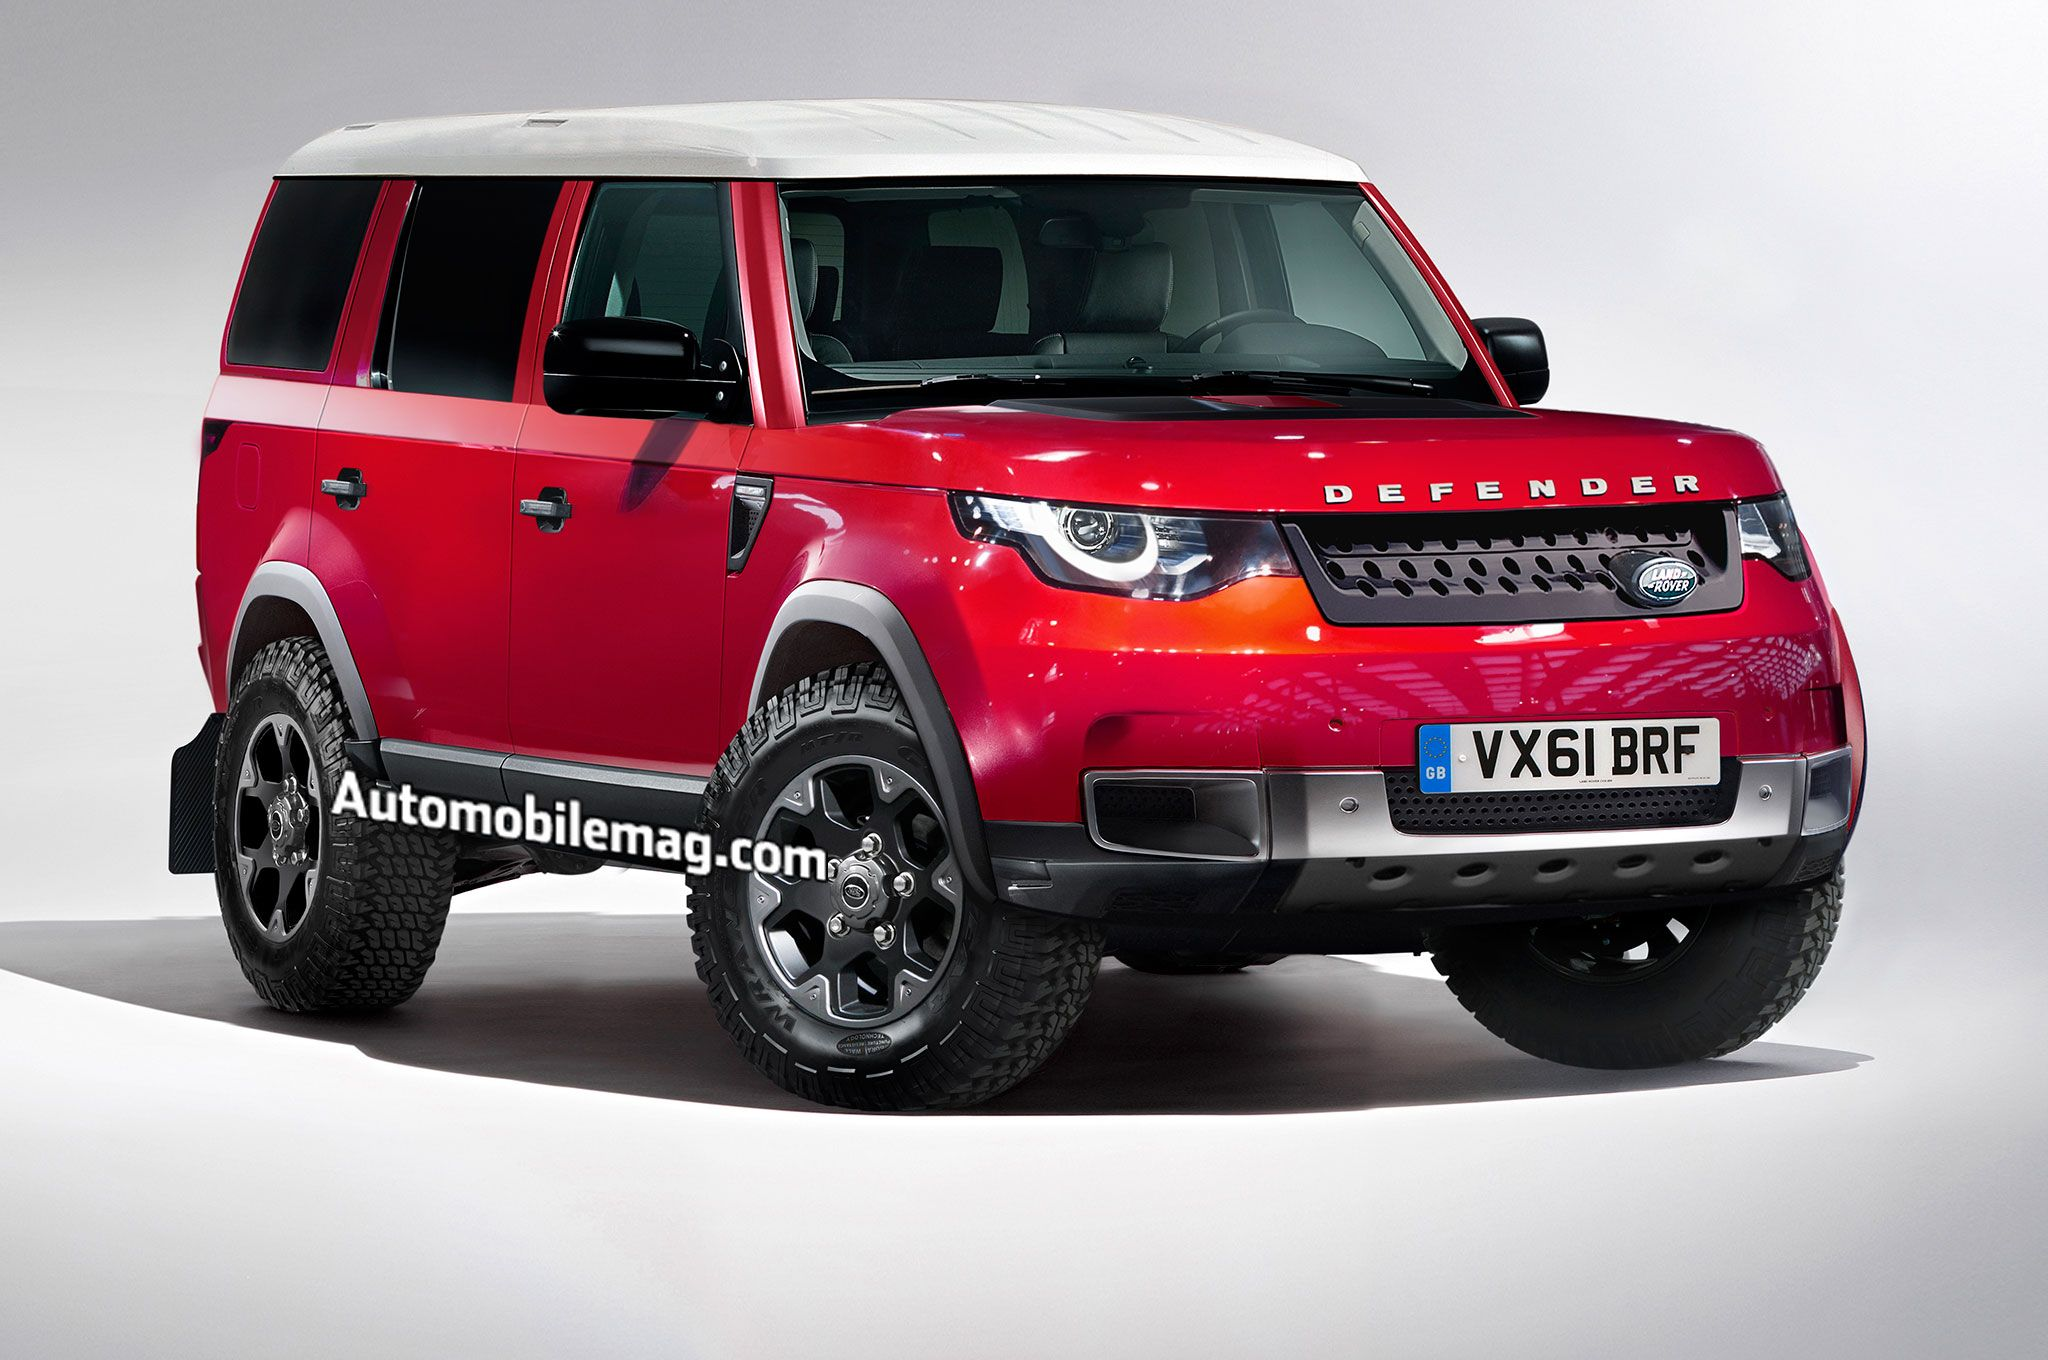 A replacement Land Rover Defender, codenamed L663, will